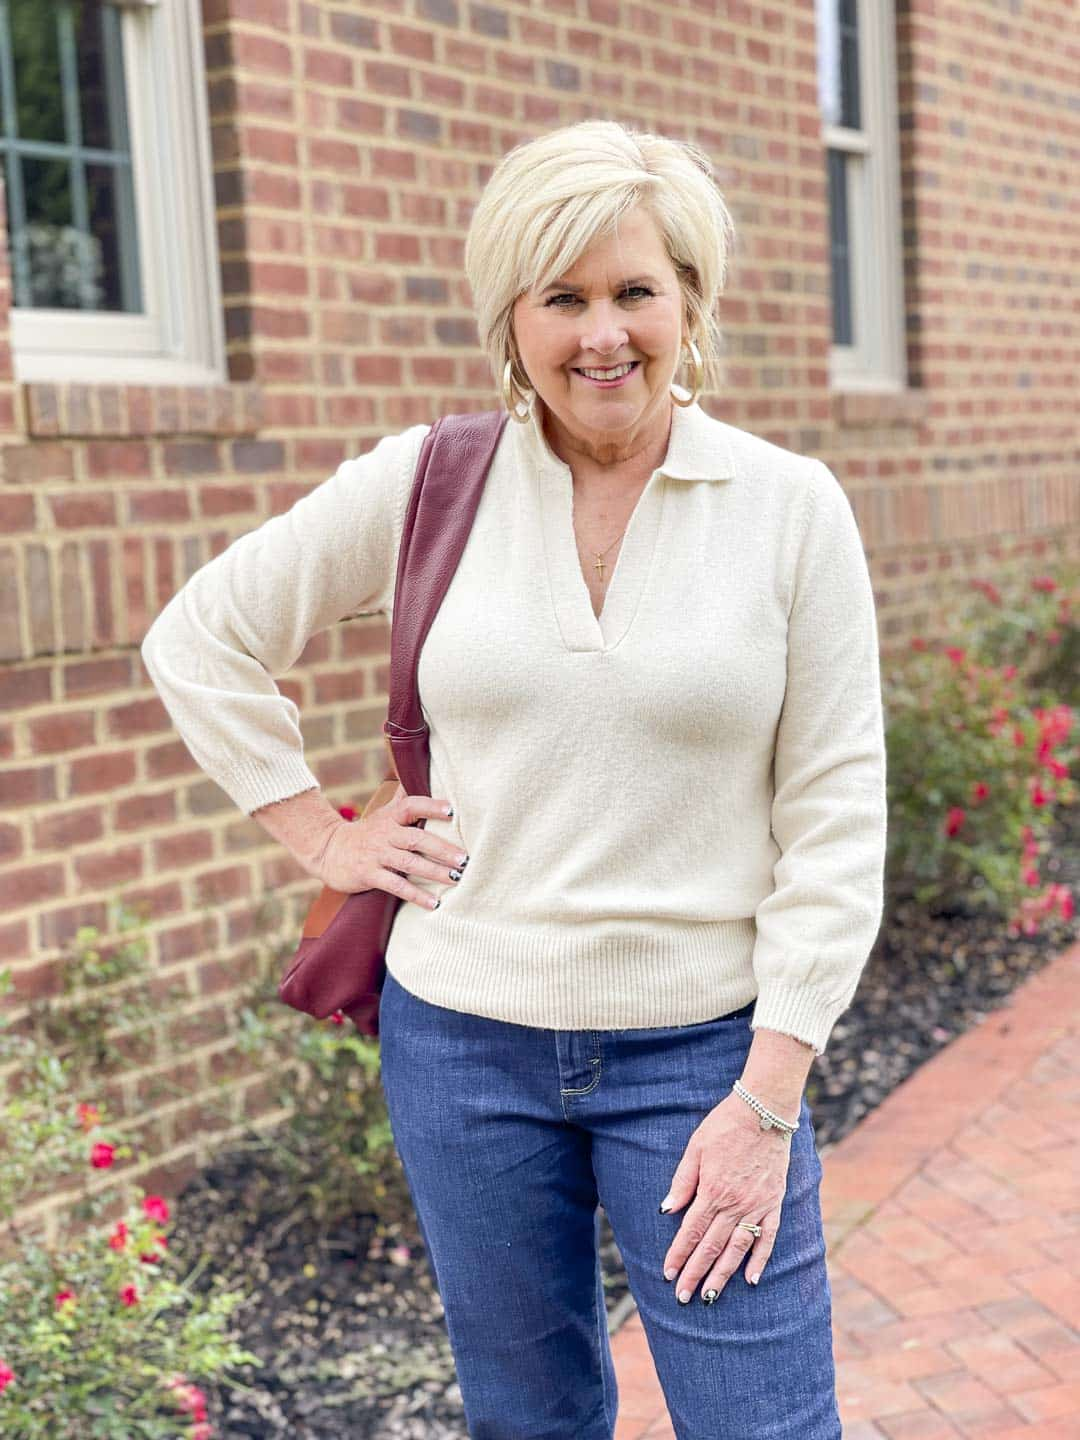 Over 40 Fashion Blogger, Tania Stephens, is showing her recent Walmart haul including this ivory polo sweater